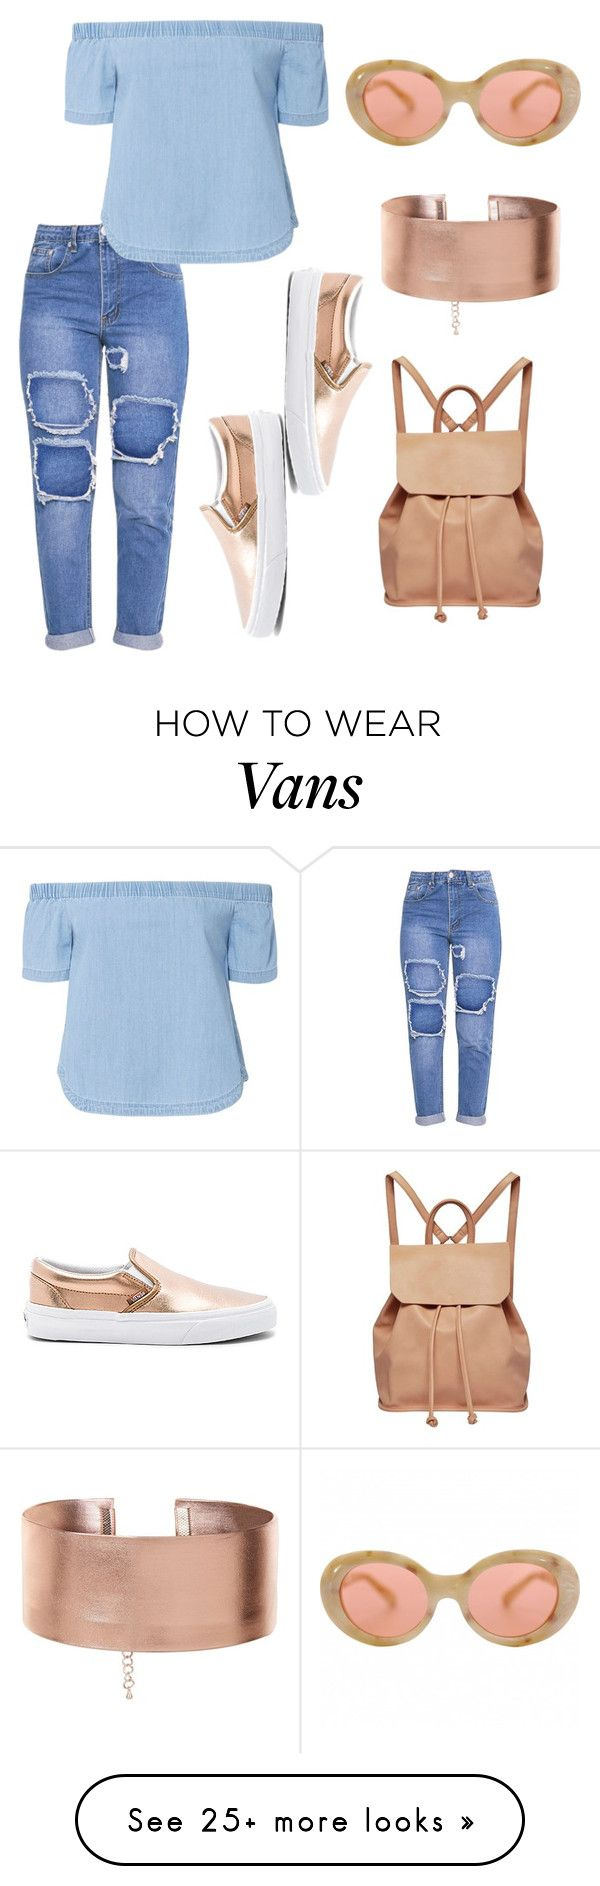 """blue and rose gold"" by stunnerjoy on Polyvore featuring Vans, Acne Studios, Urban Originals and 3x1"